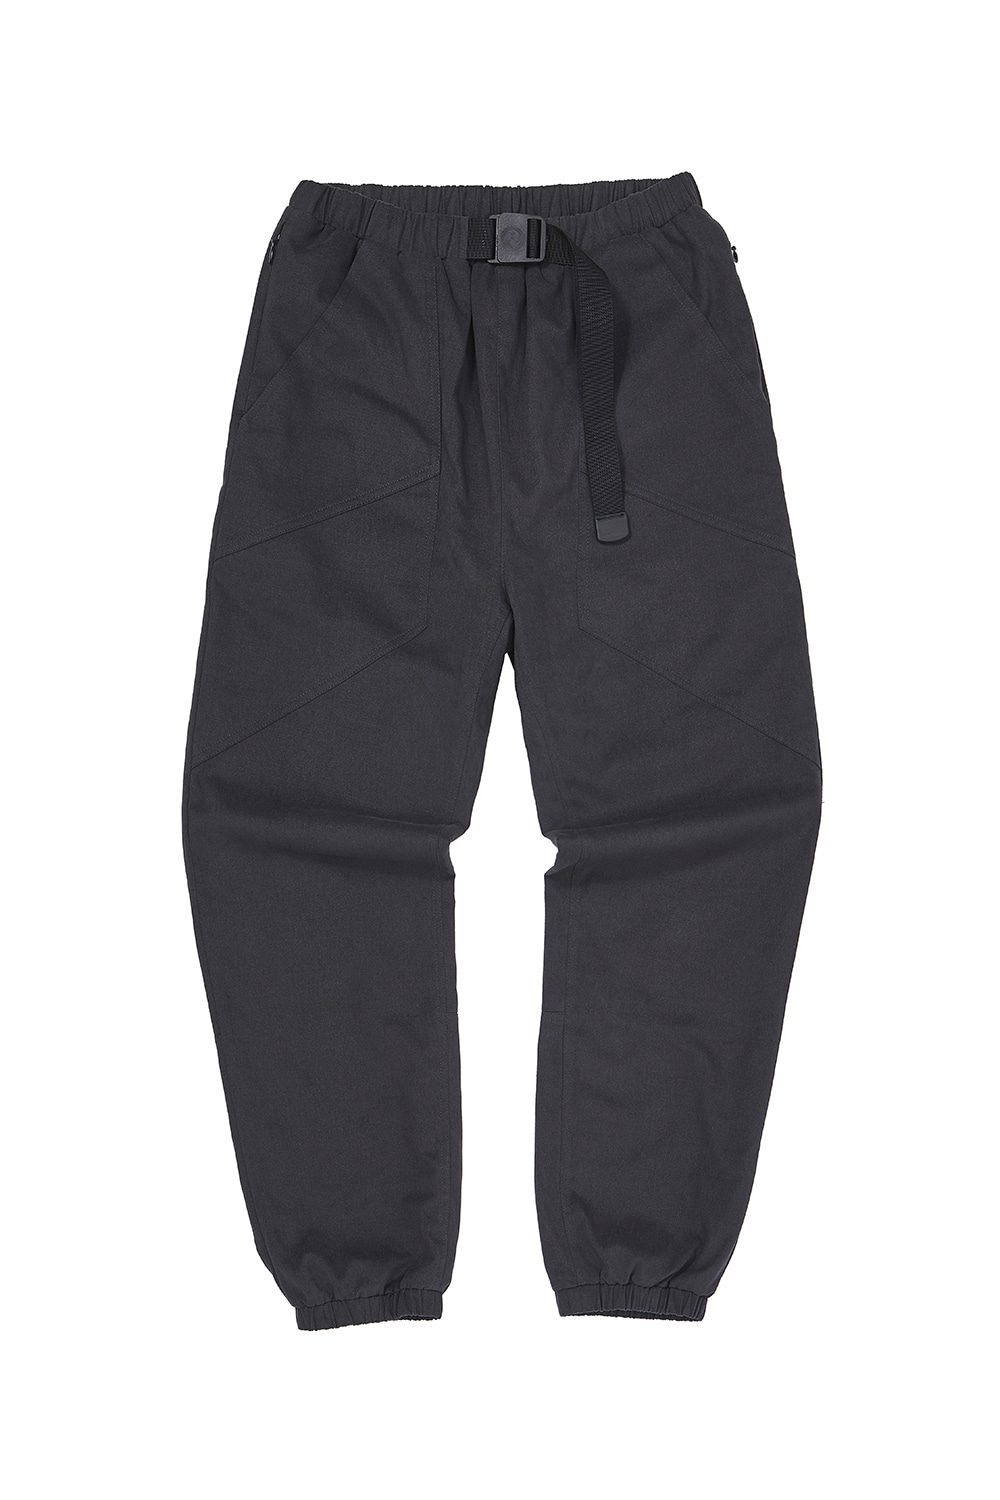 BELTED JOGGER_charcoal